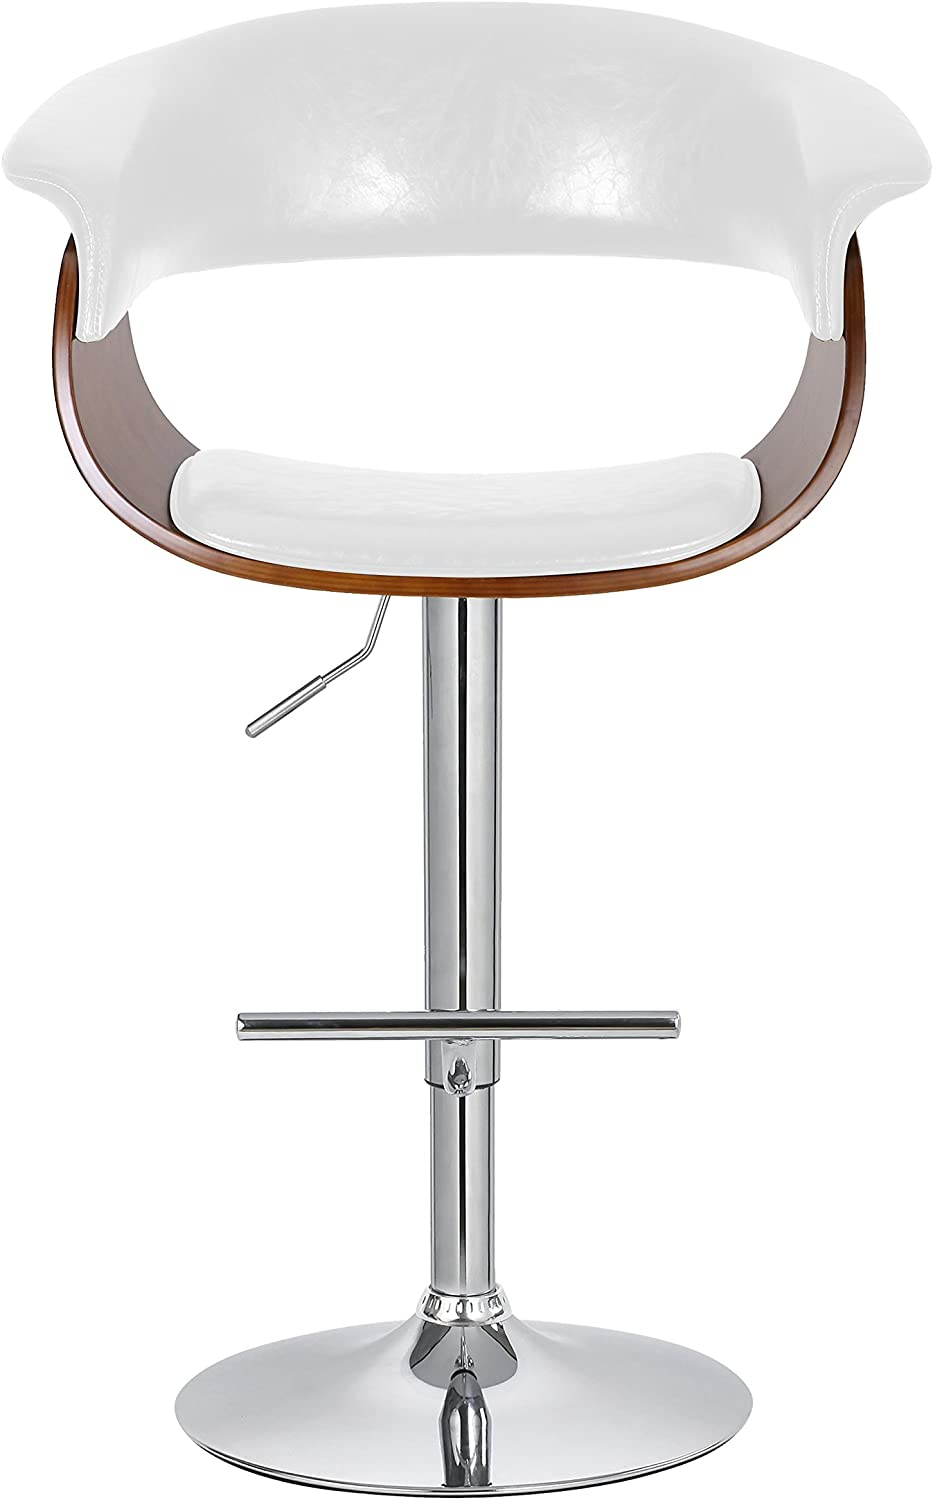 Porthos Home Adjustable Swivel Mansfield Barstool, White